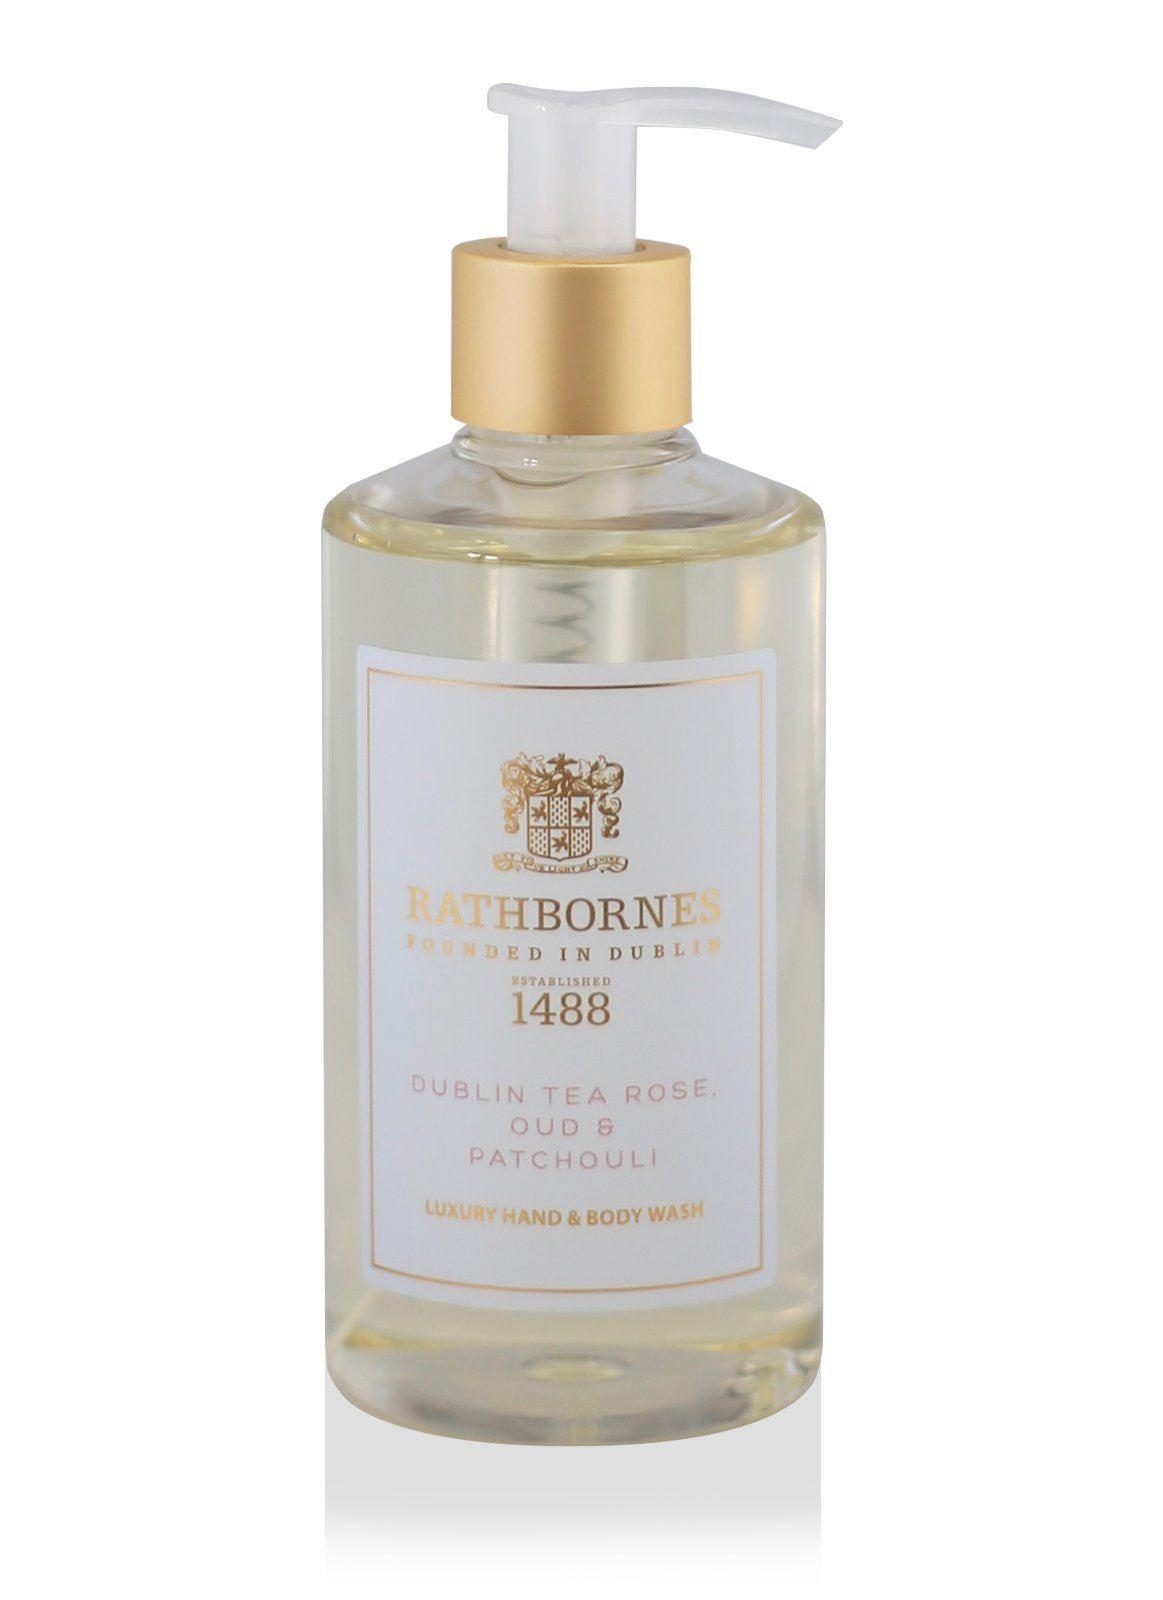 Rathbornes 1488 Dublin Tea Rose, Oud and Patchouli Hand & Body Wash